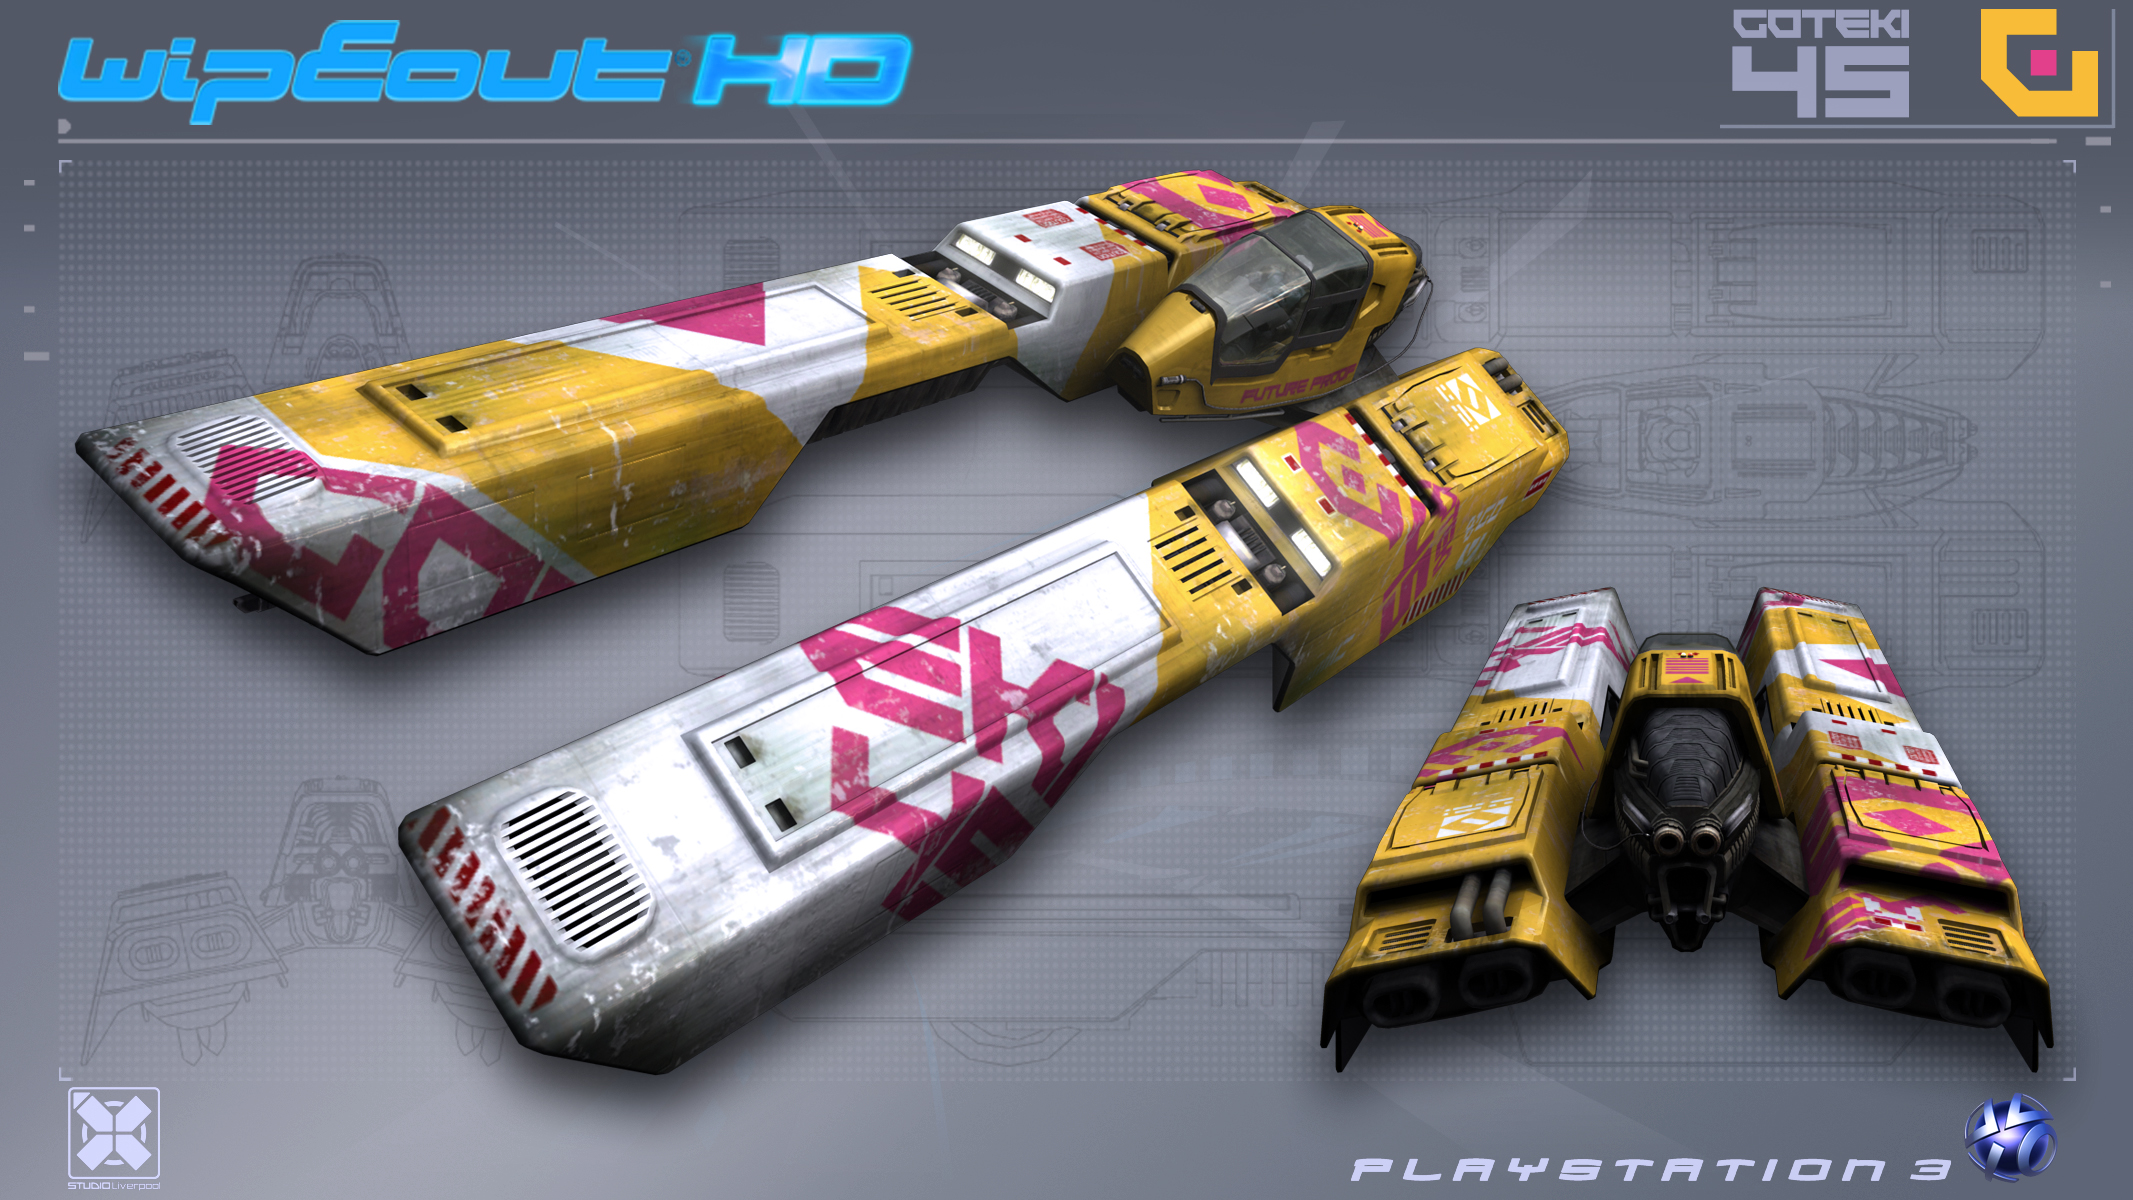 goteki45___wipeout_hd___ps3_by_nocomplys